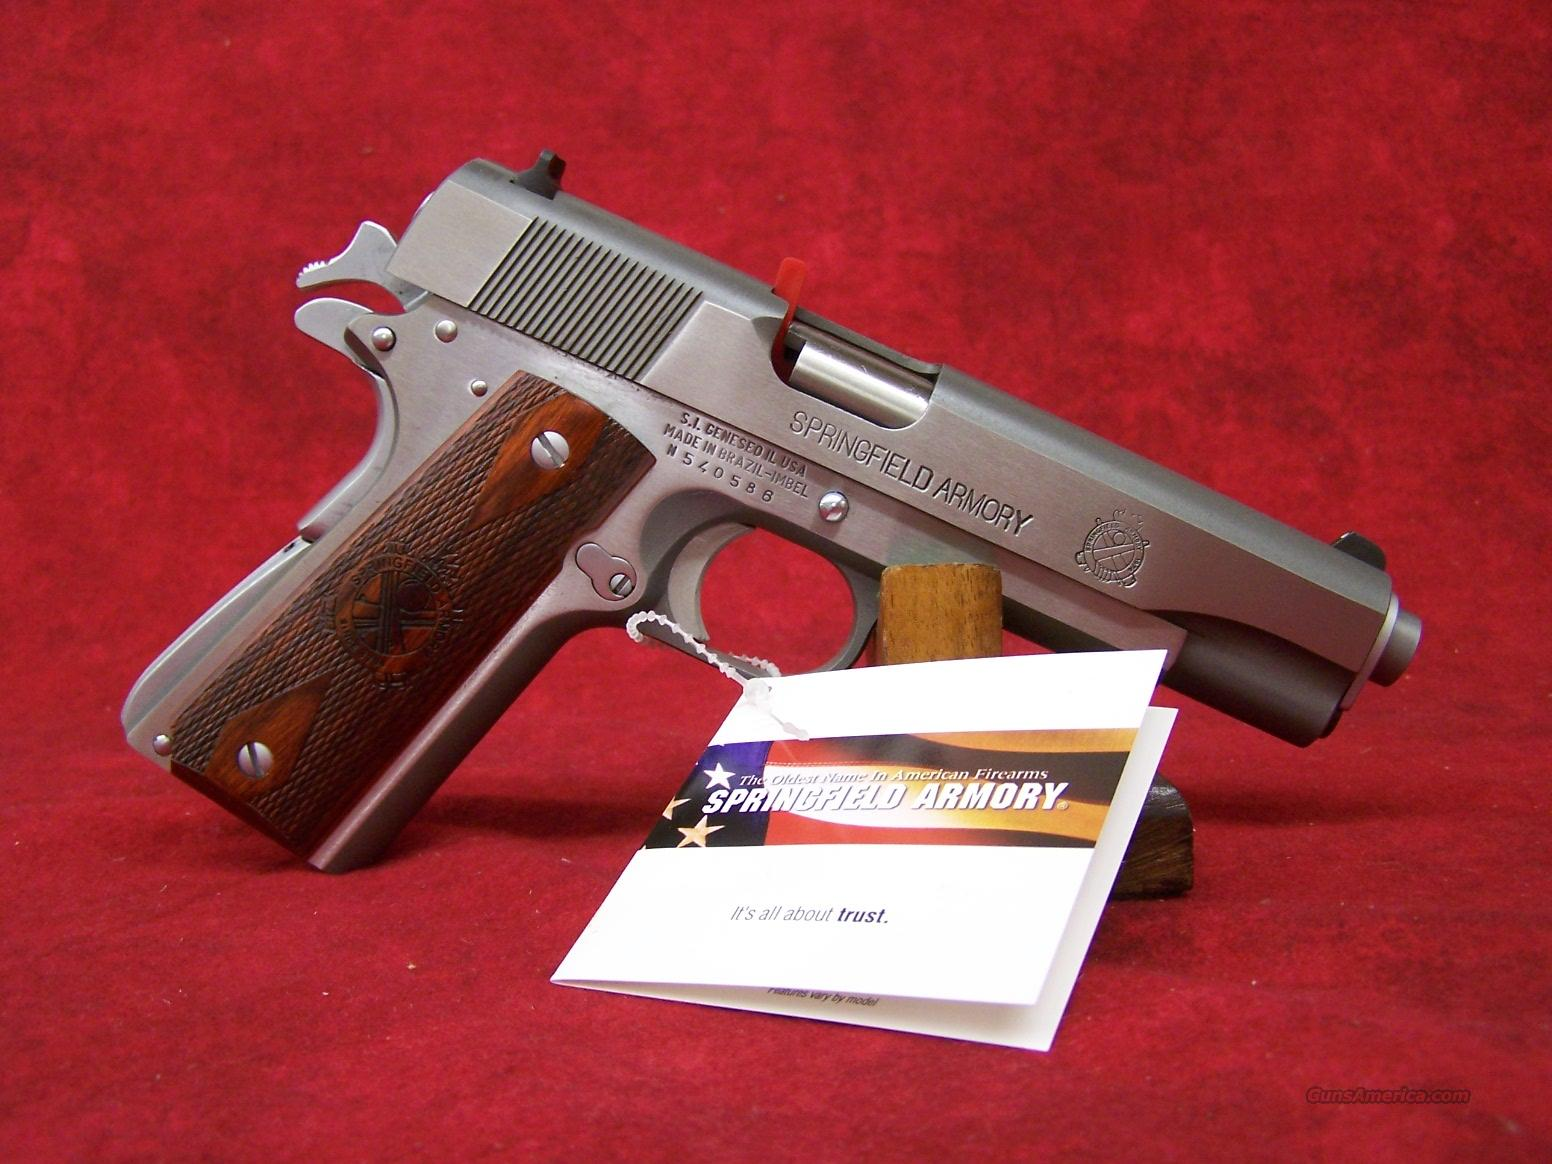 Springfield Armory 1911 Mil-Spec Full Size SS .45ACP(PB9151LP)  Guns > Pistols > Springfield Armory Pistols > 1911 Type